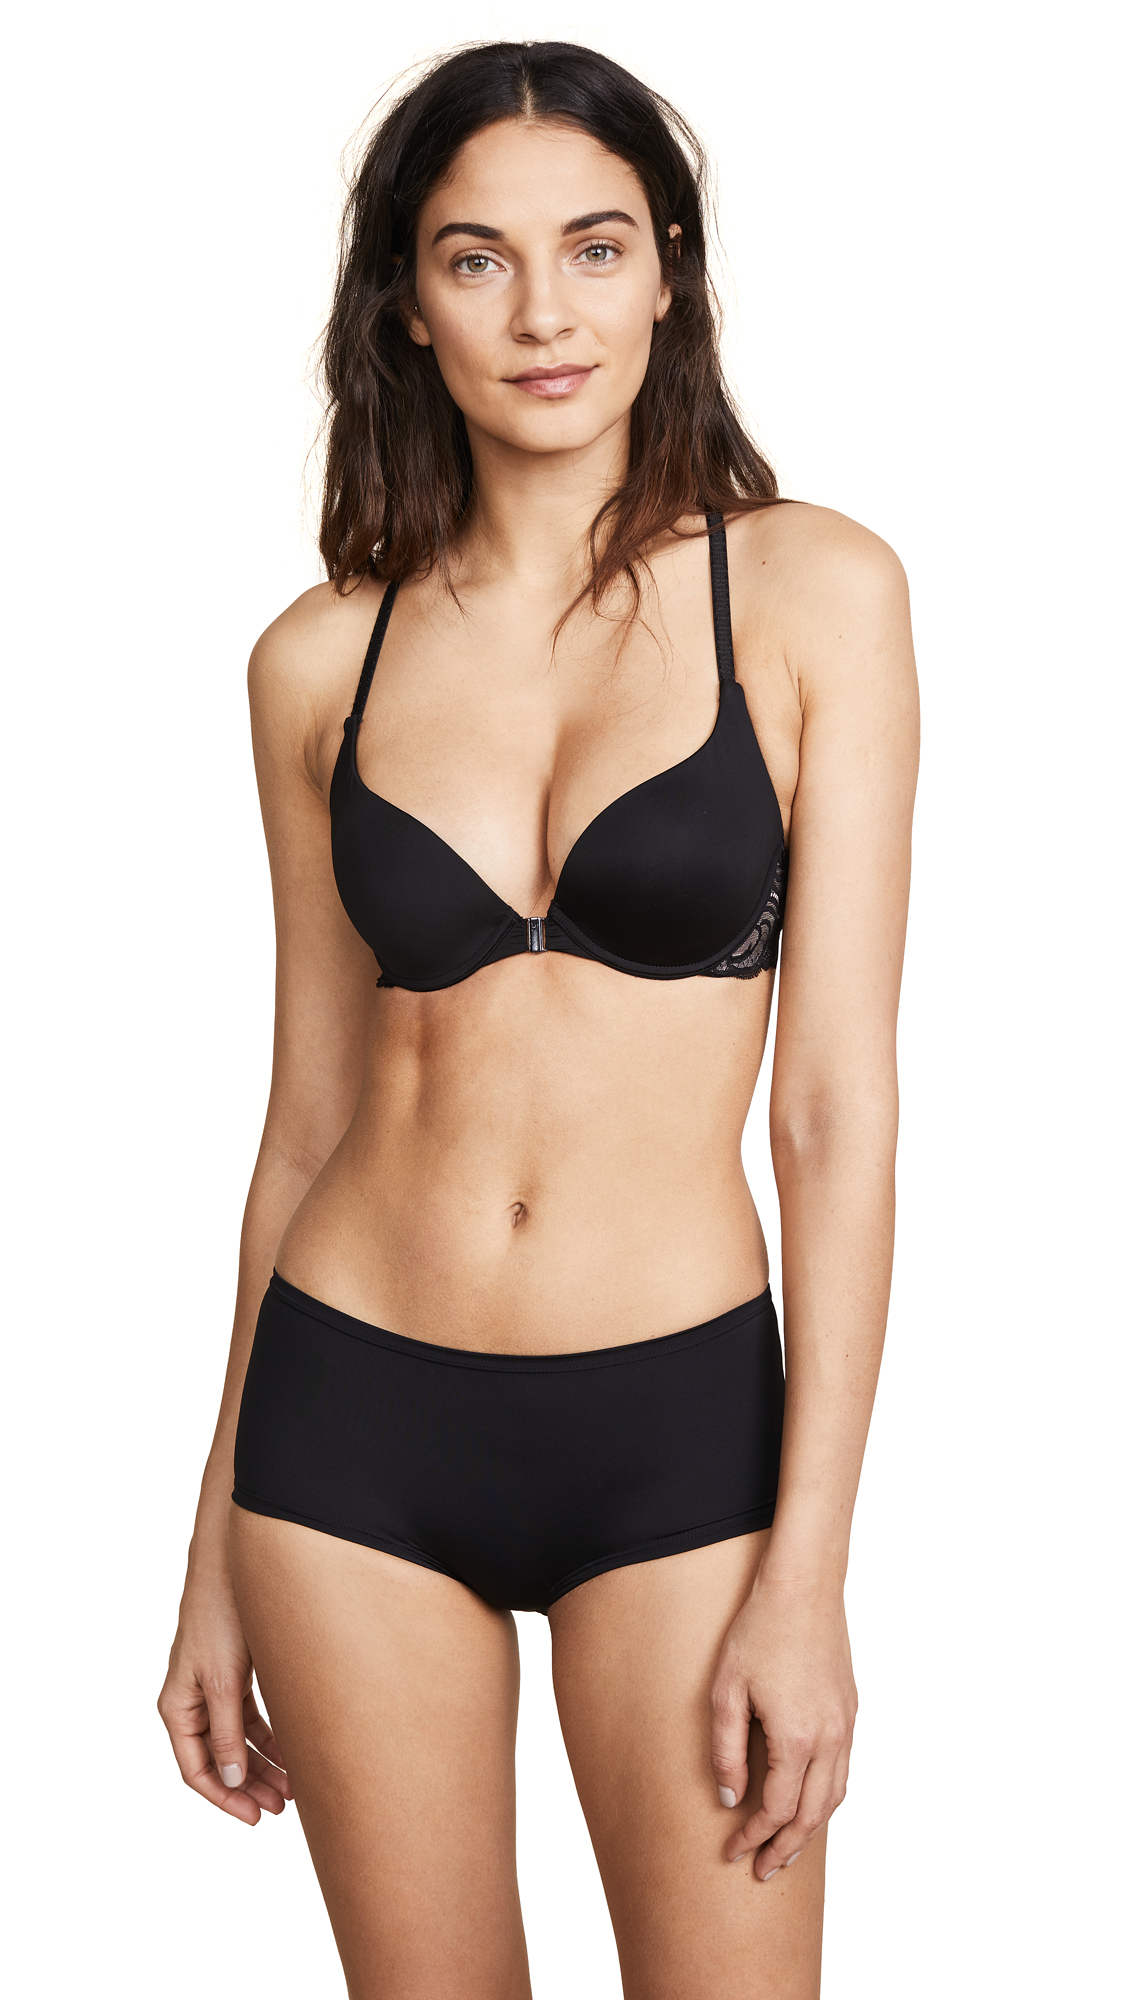 Cosabella Evolved Push Up Bra - Black